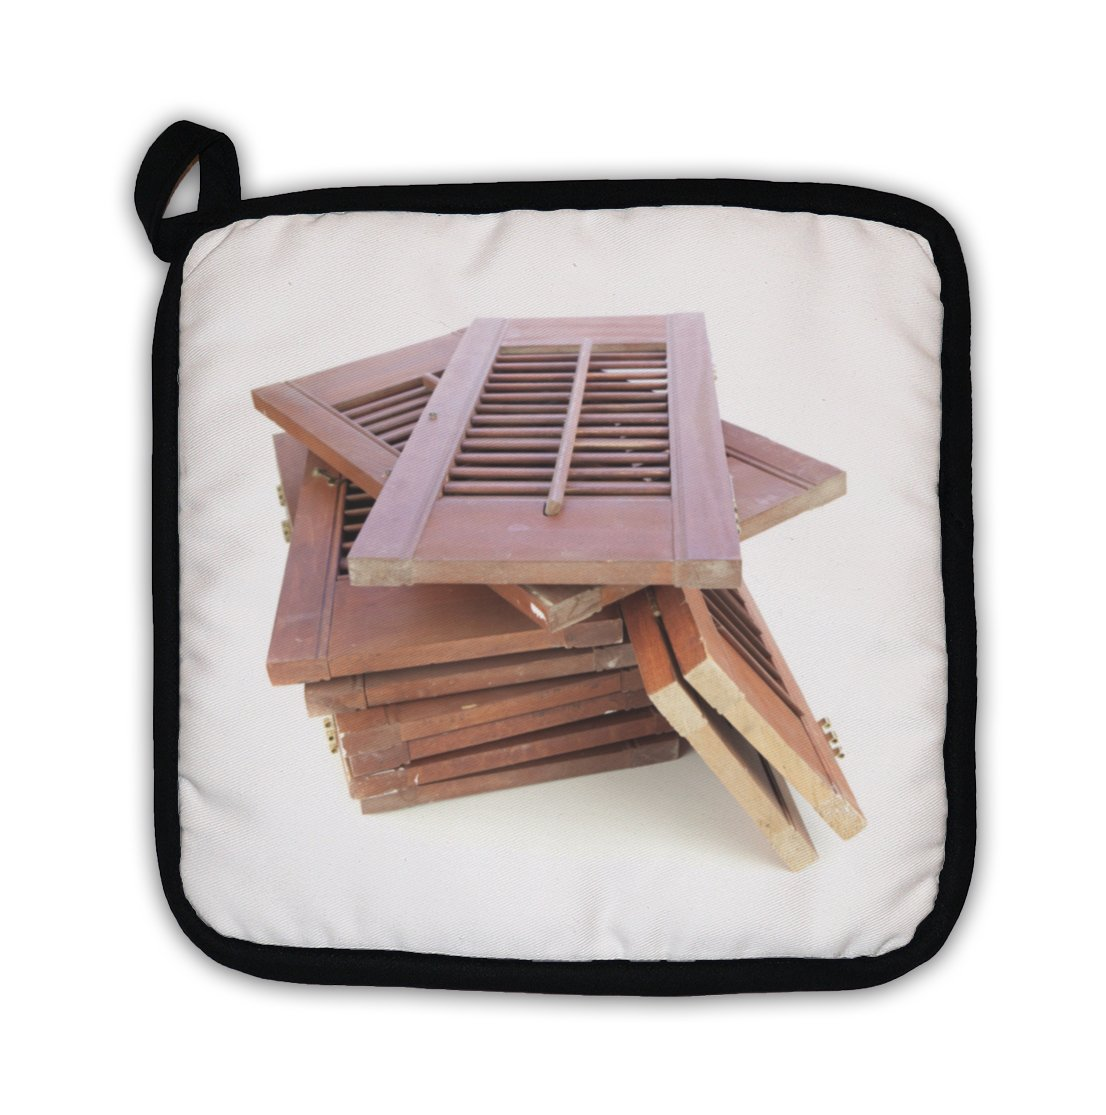 Gear New ''Used Window Shutters Recycled Building Materials'' Pot Holder